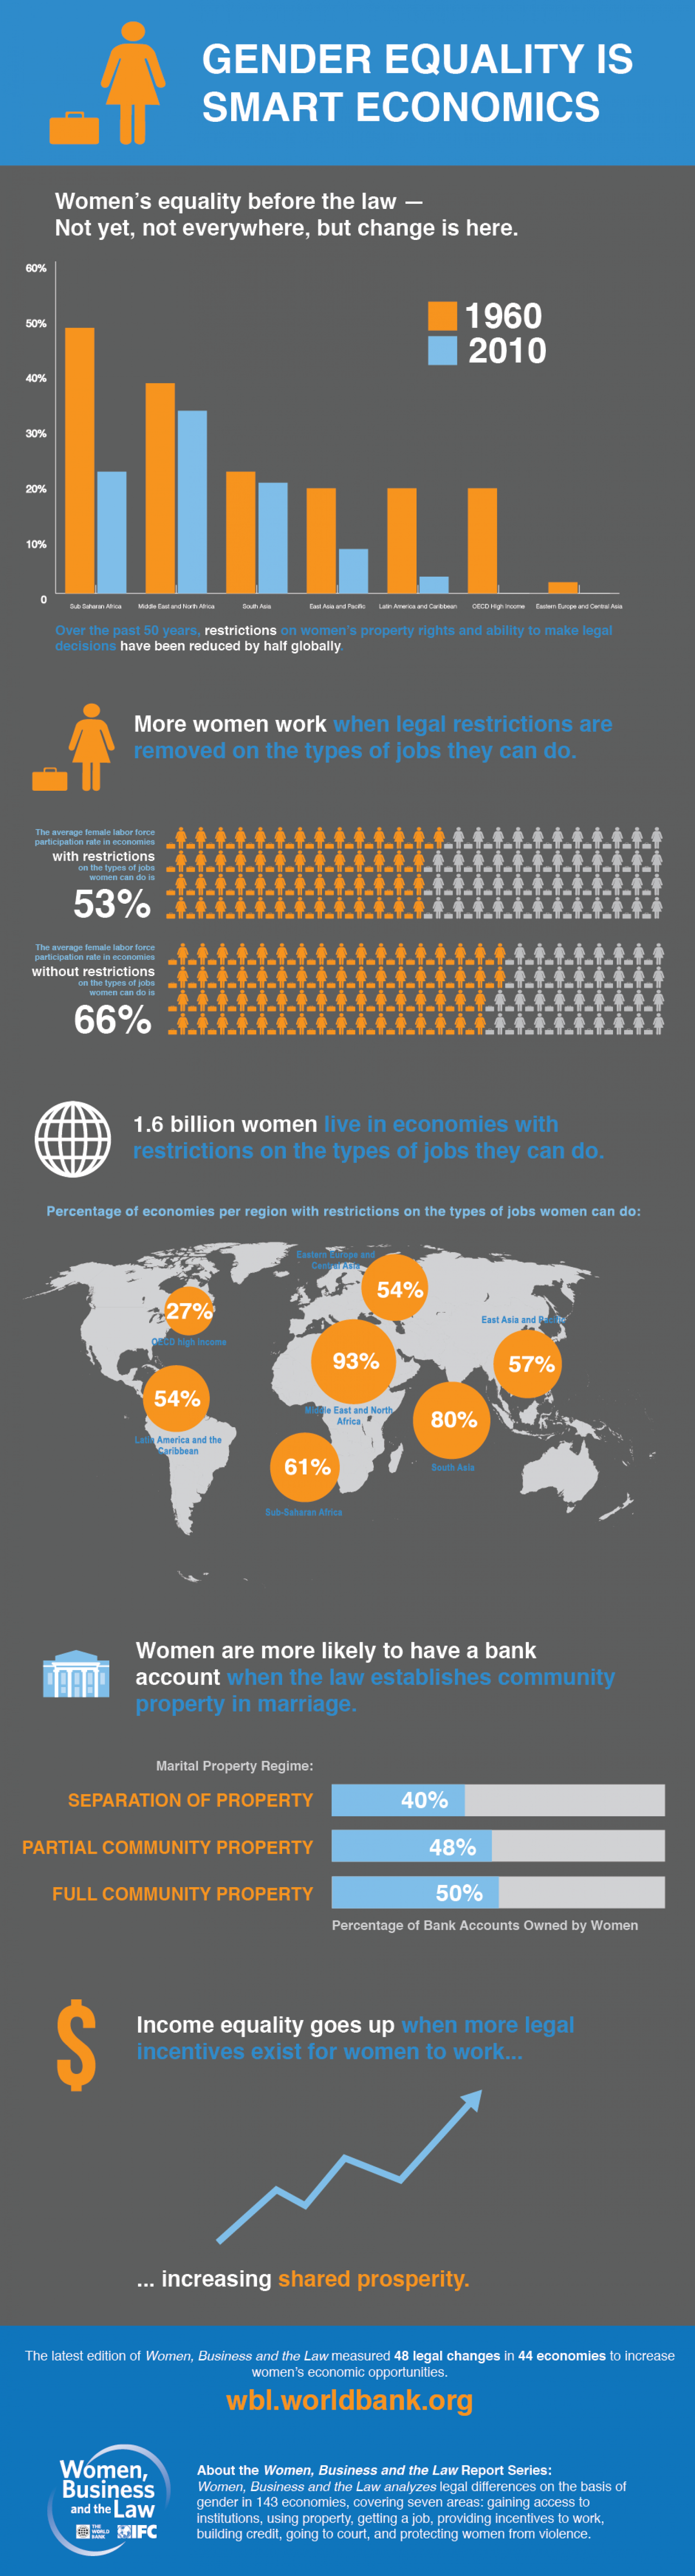 Gender Equality is Smart Economics Infographic